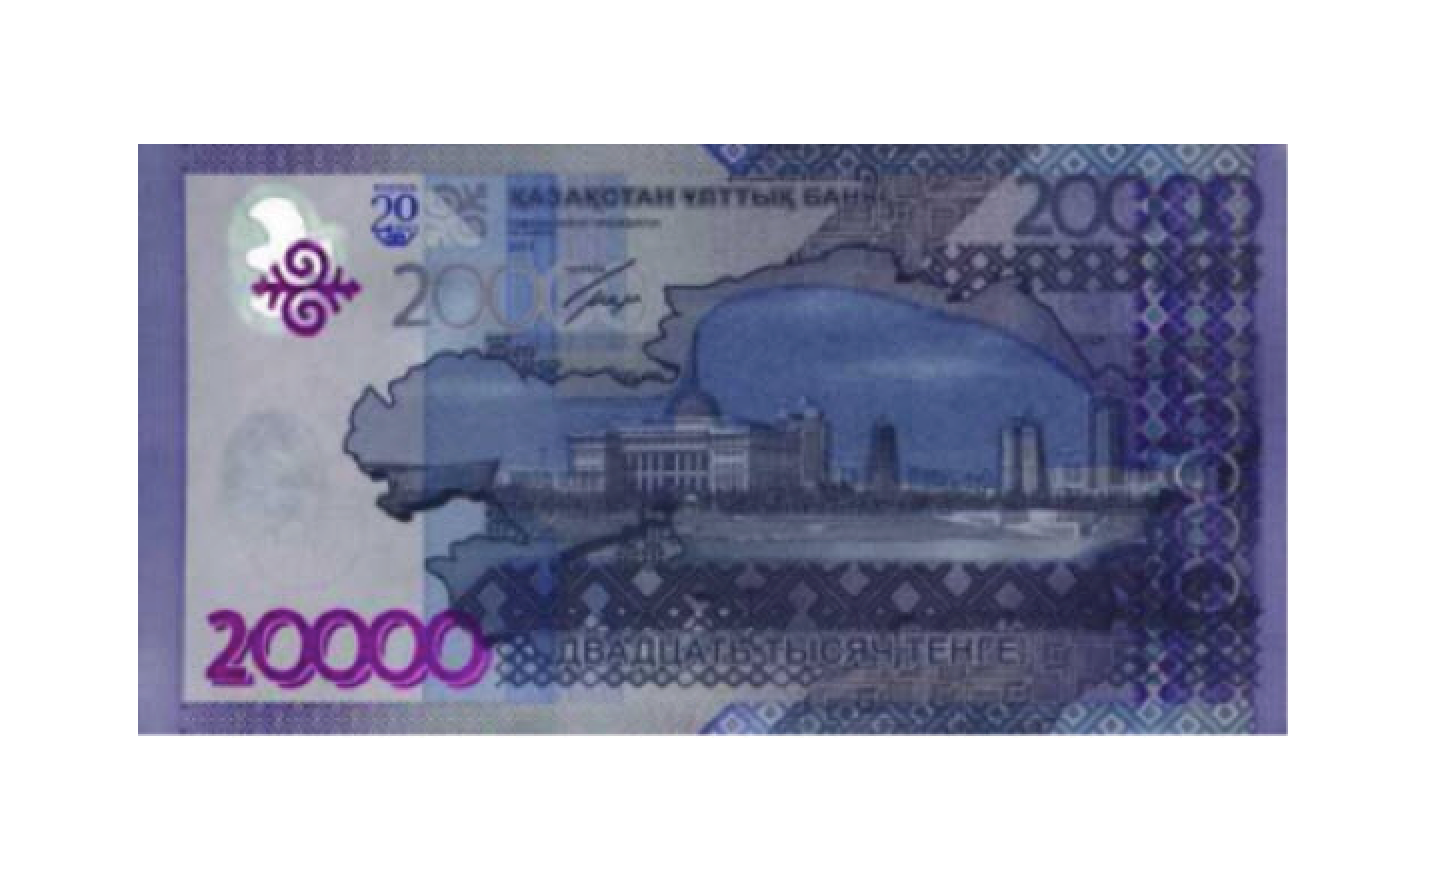 Hyperinflation Watch - Kazakhstan Unveils New 20,000 Tenge Banknote